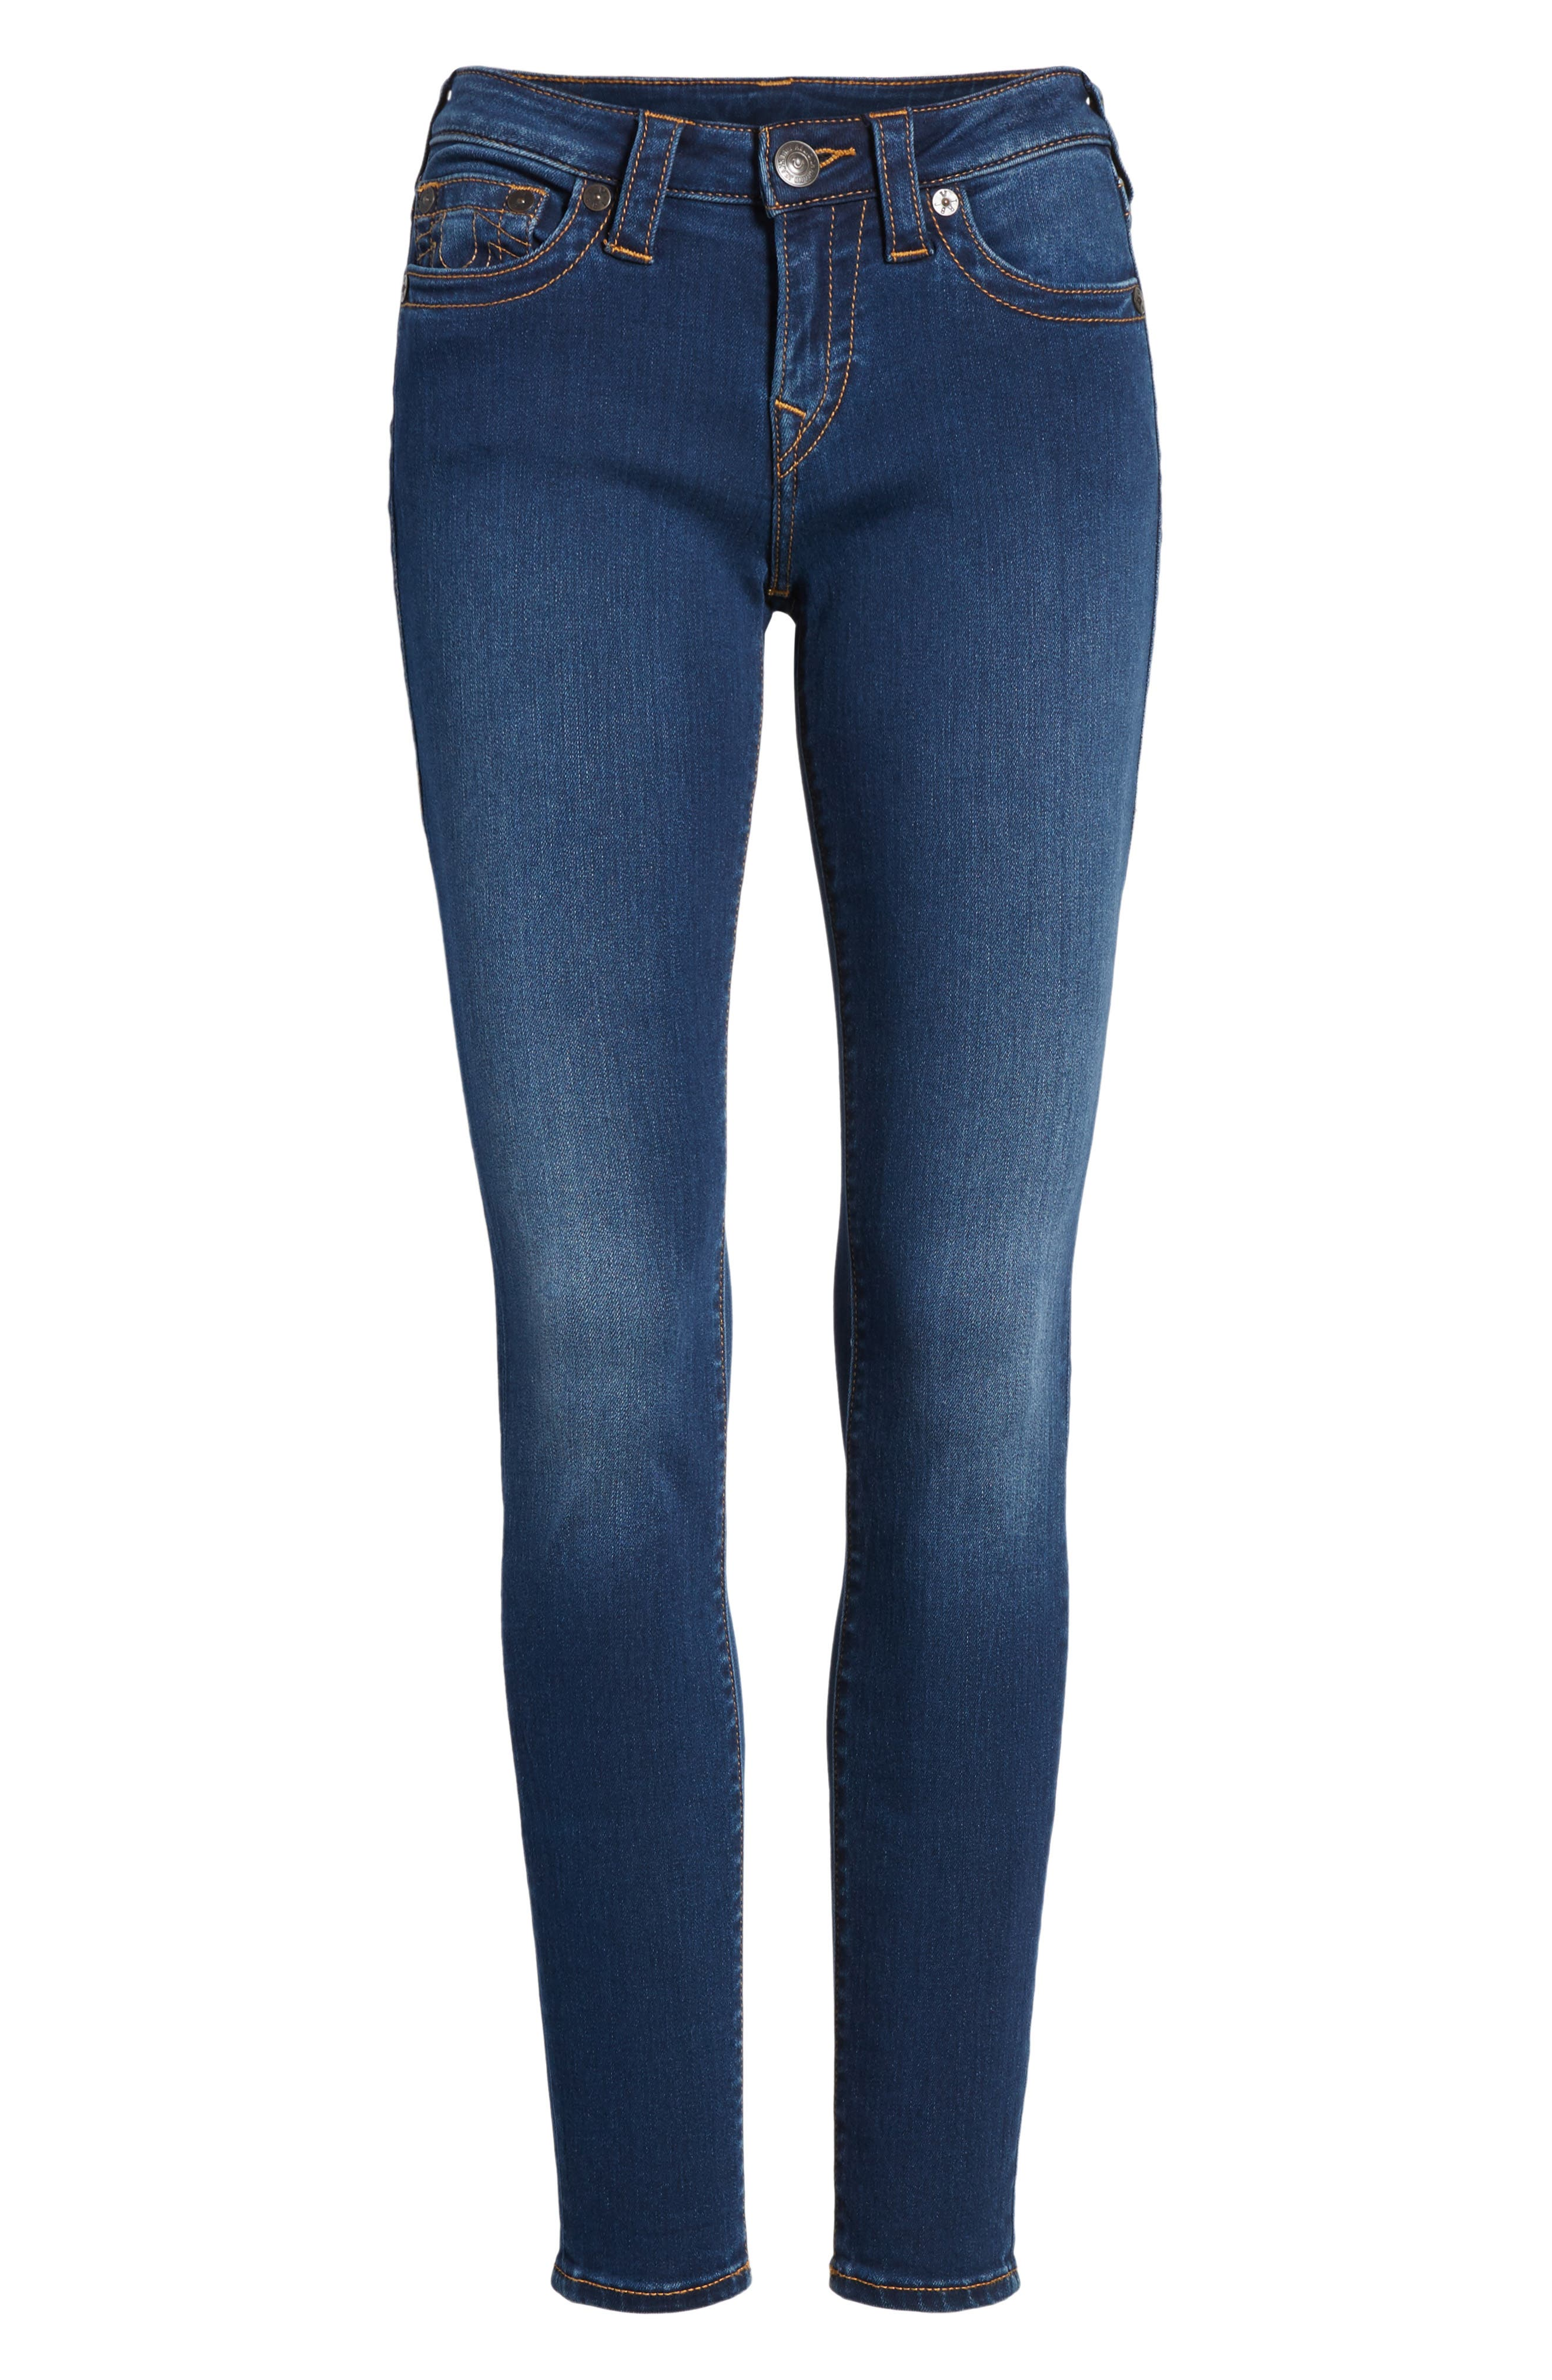 Halle Mid Rise Skinny Jeans,                             Alternate thumbnail 6, color,                             400